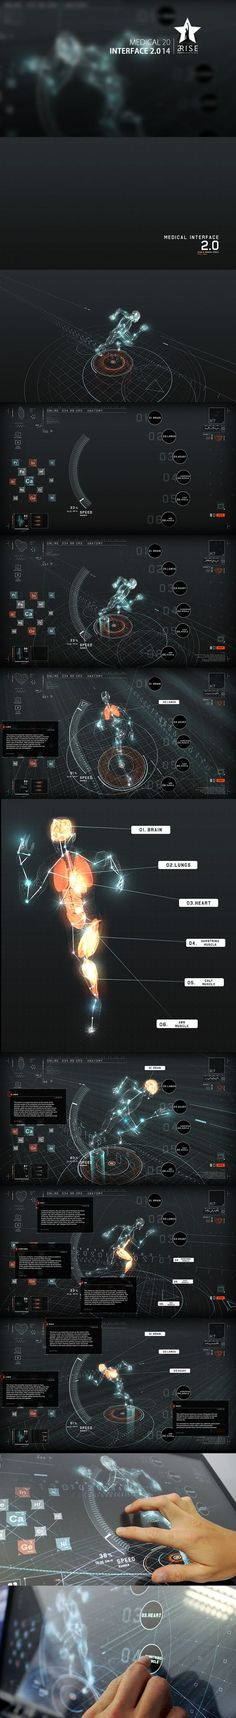 MEDICAL INTERFACE 2.0 by Jedi88.deviantart.com on @deviantART: